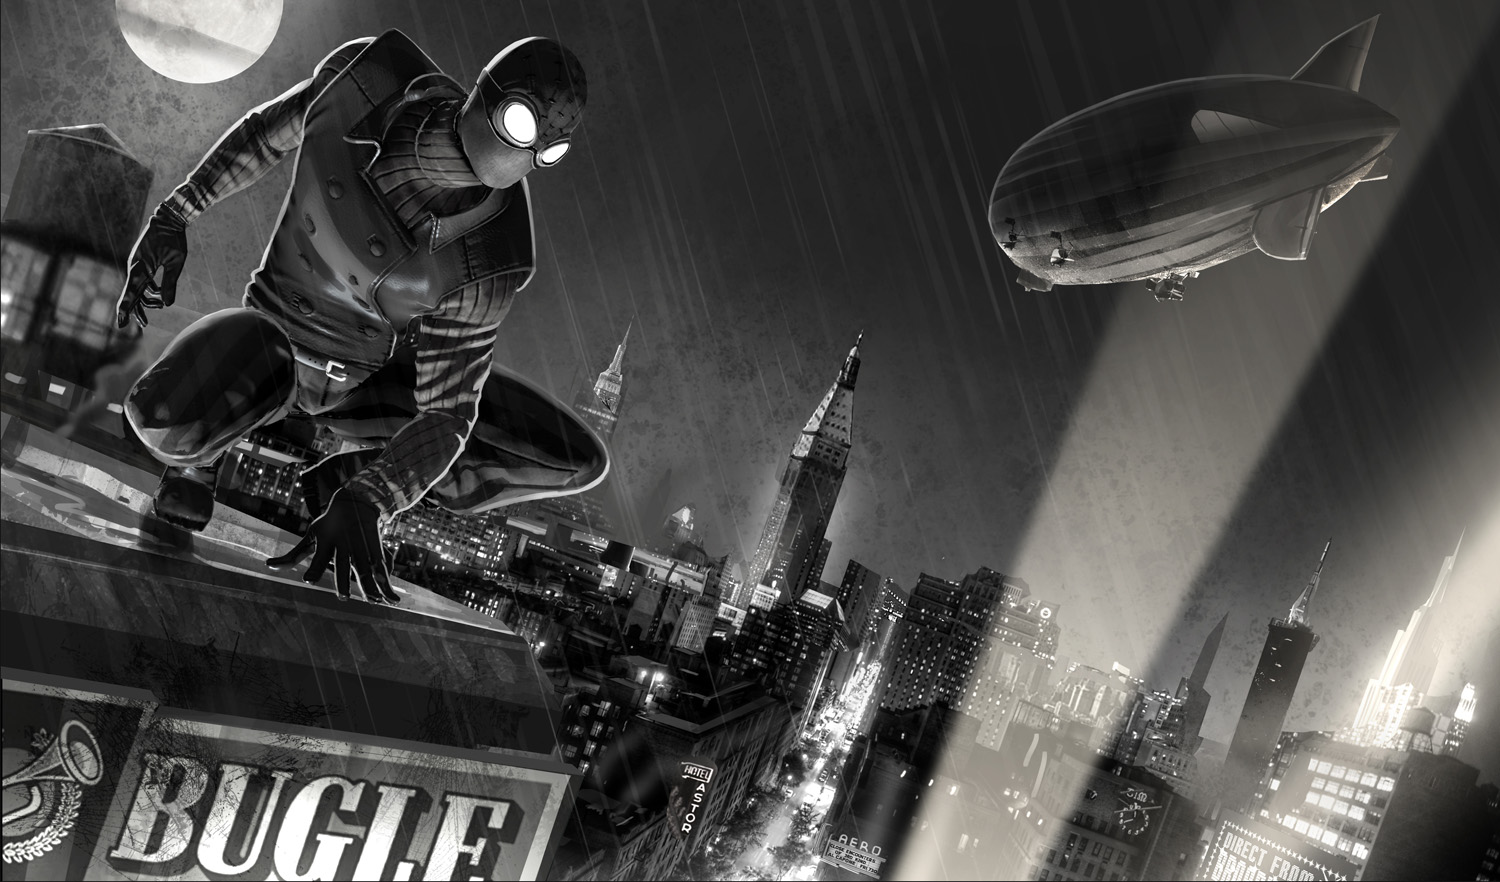 Spider man shattered dimensions noir suits - photo#7